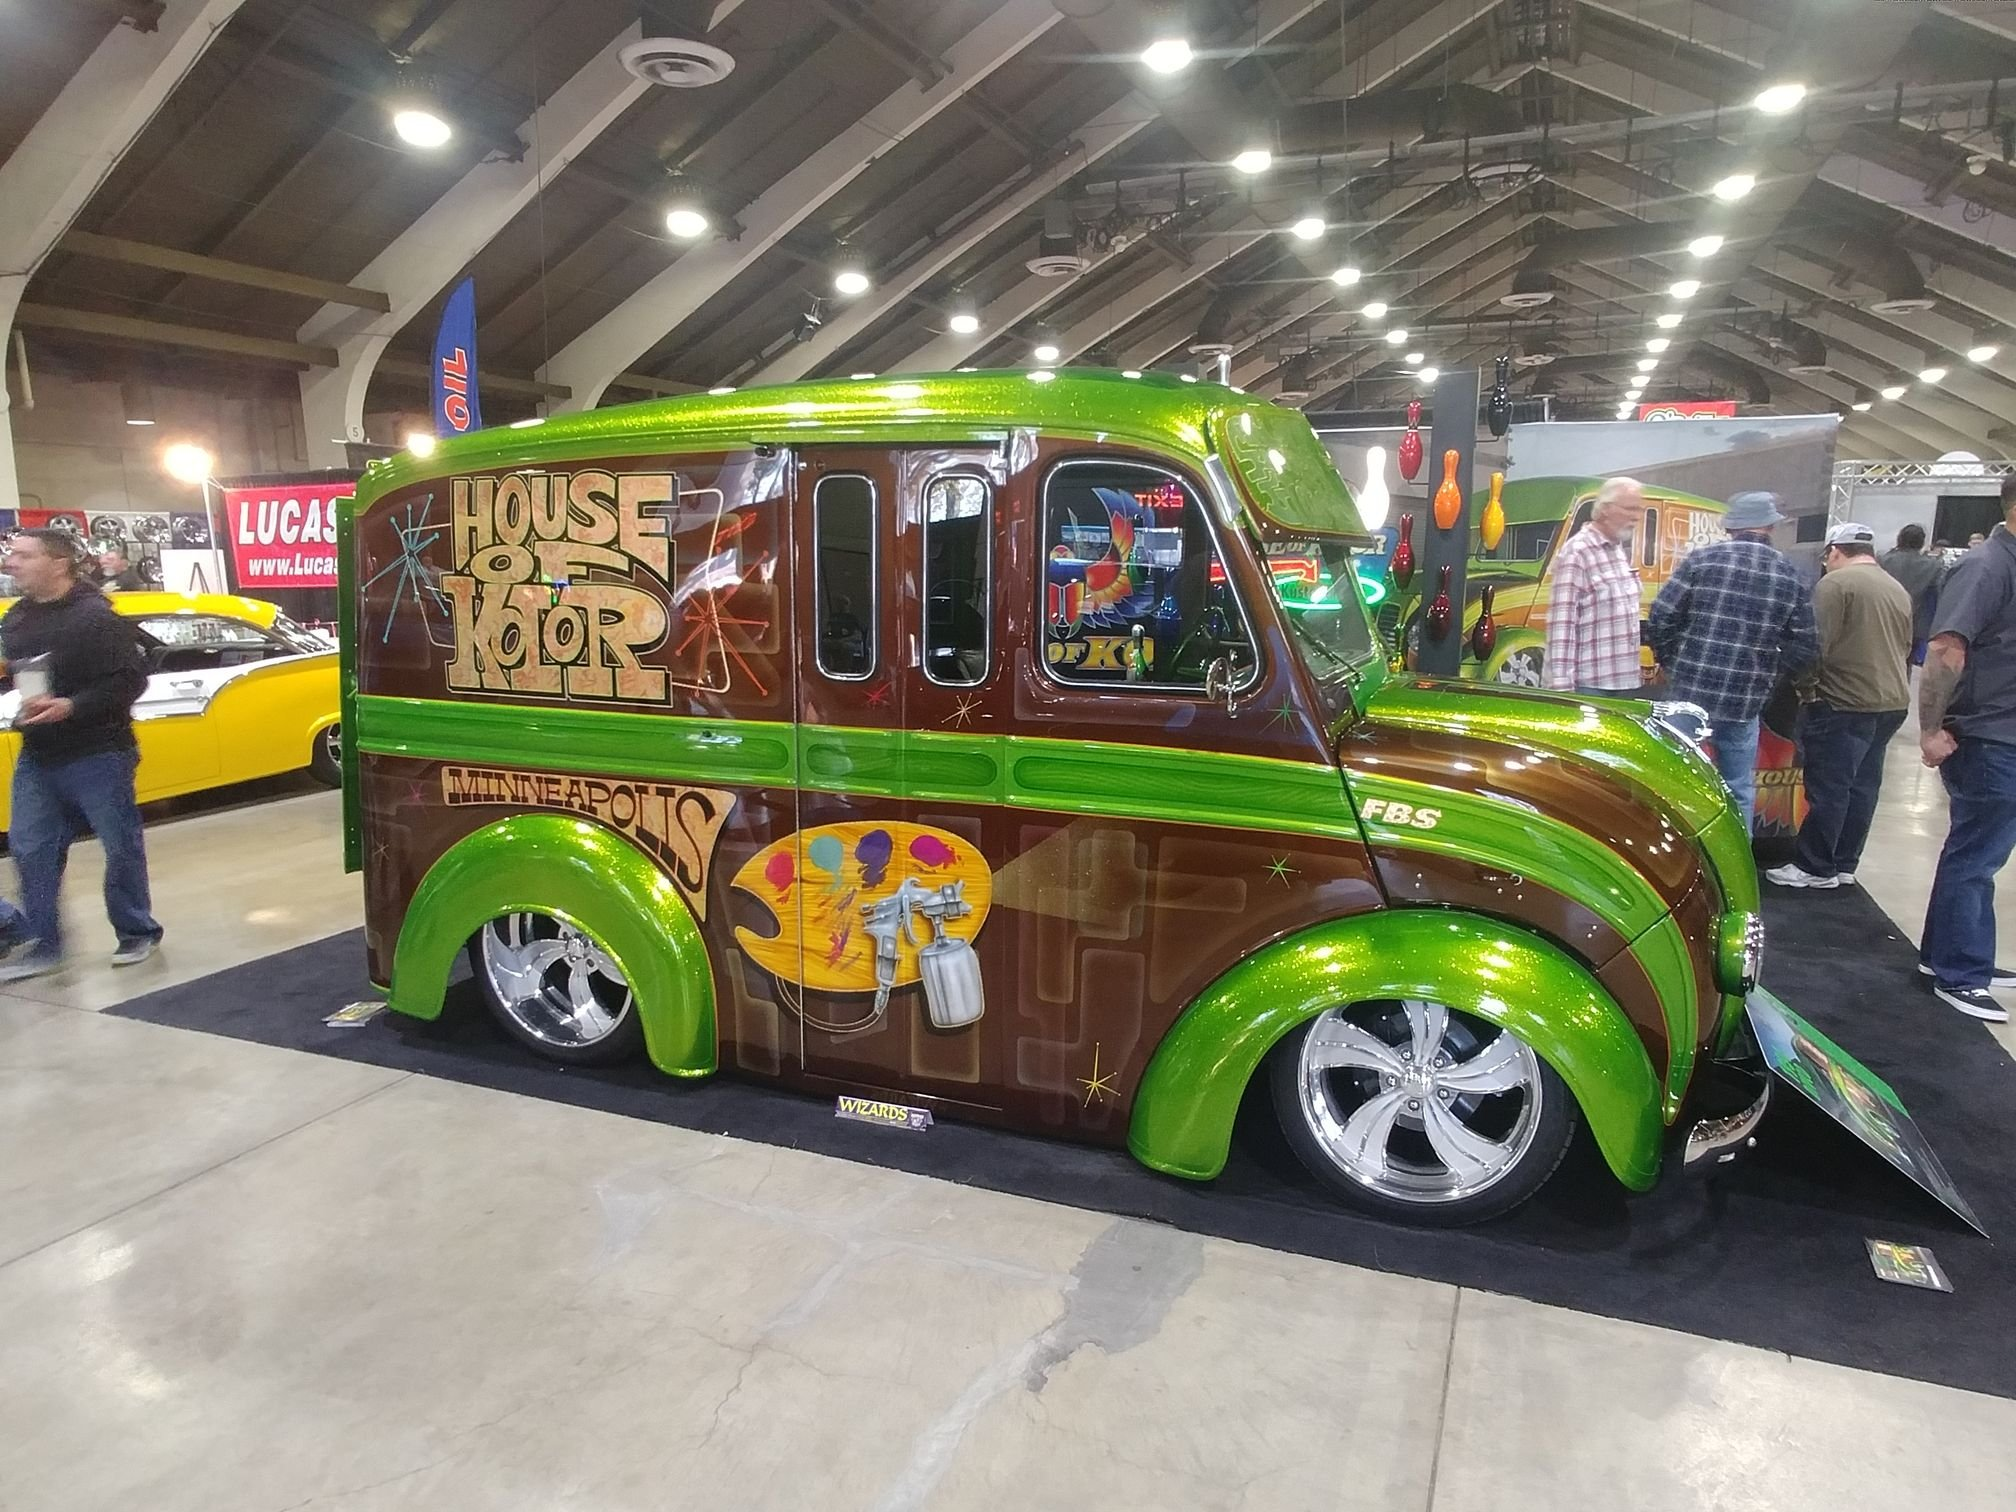 House of Kolor's LS Powered,1954 Divco Truck Delivers The ...